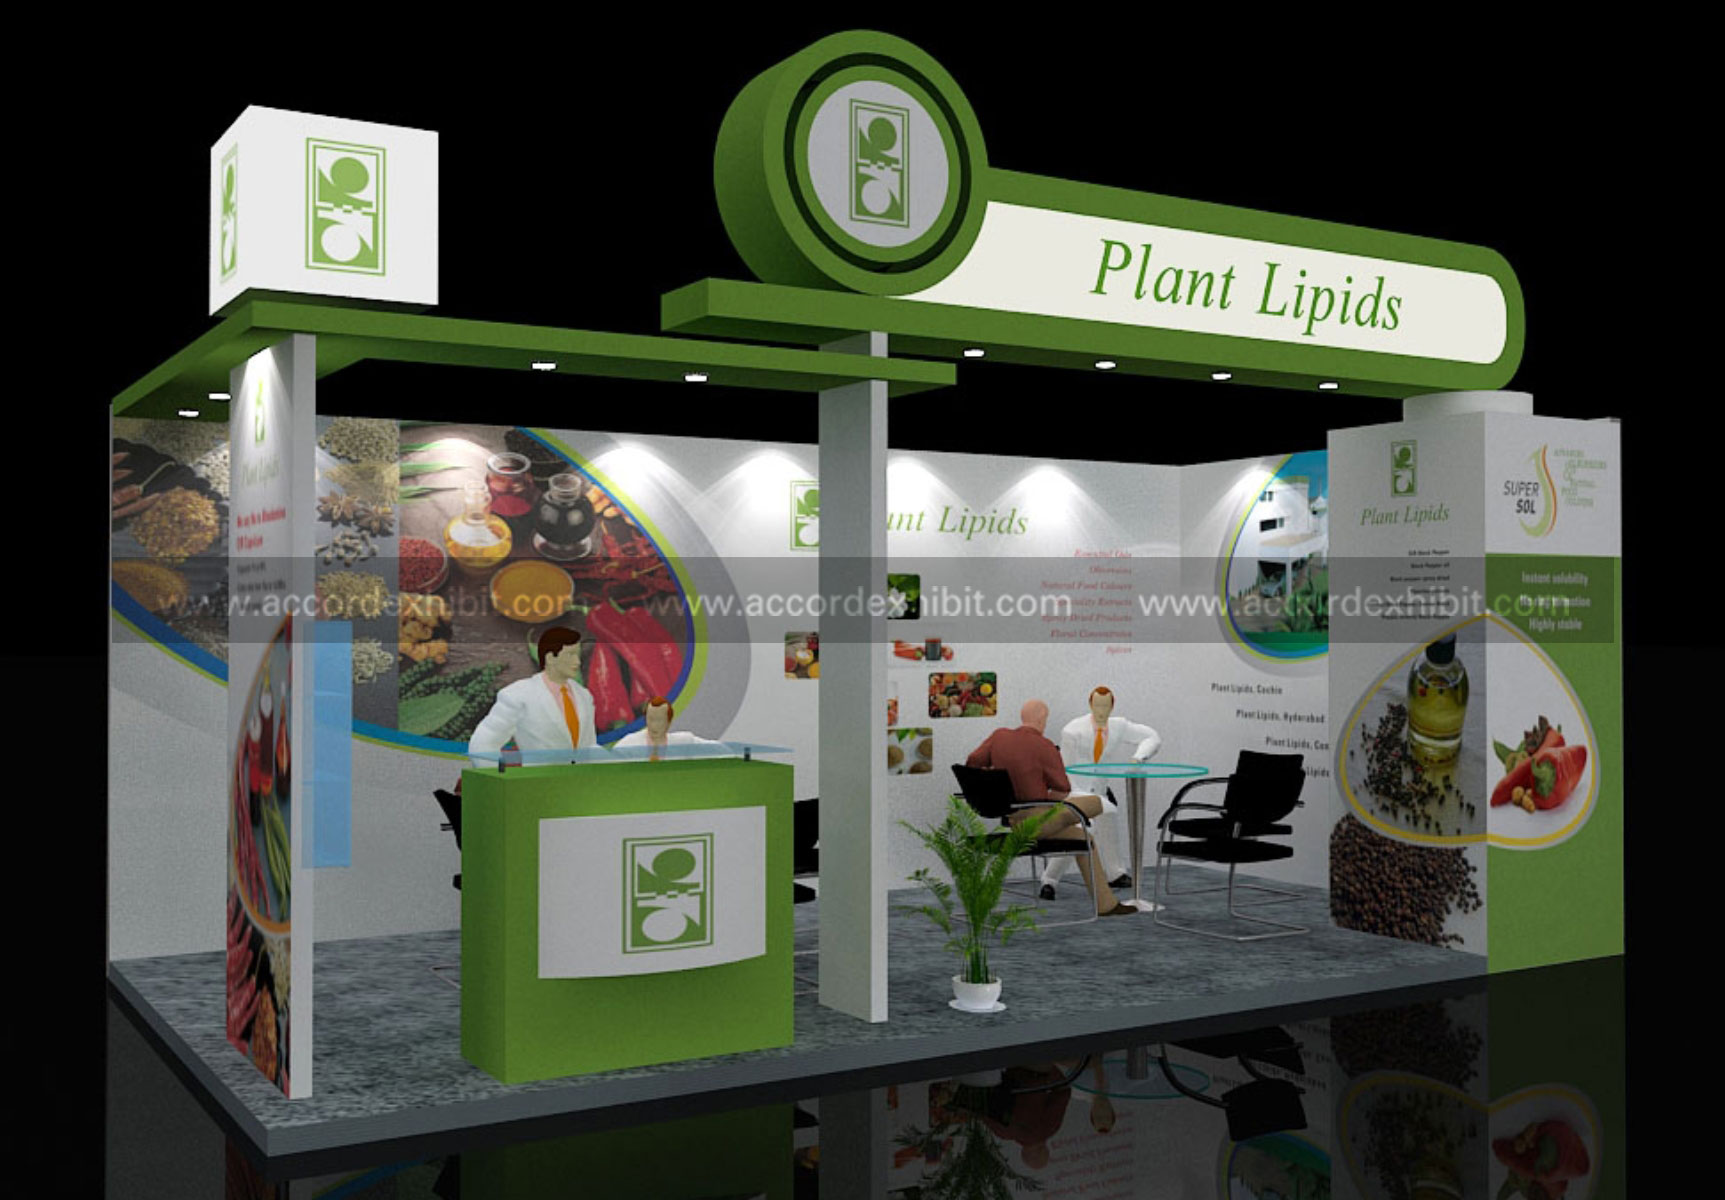 Exhibition Stall Ideas : Exhibition stall design for plant lipids btl activities